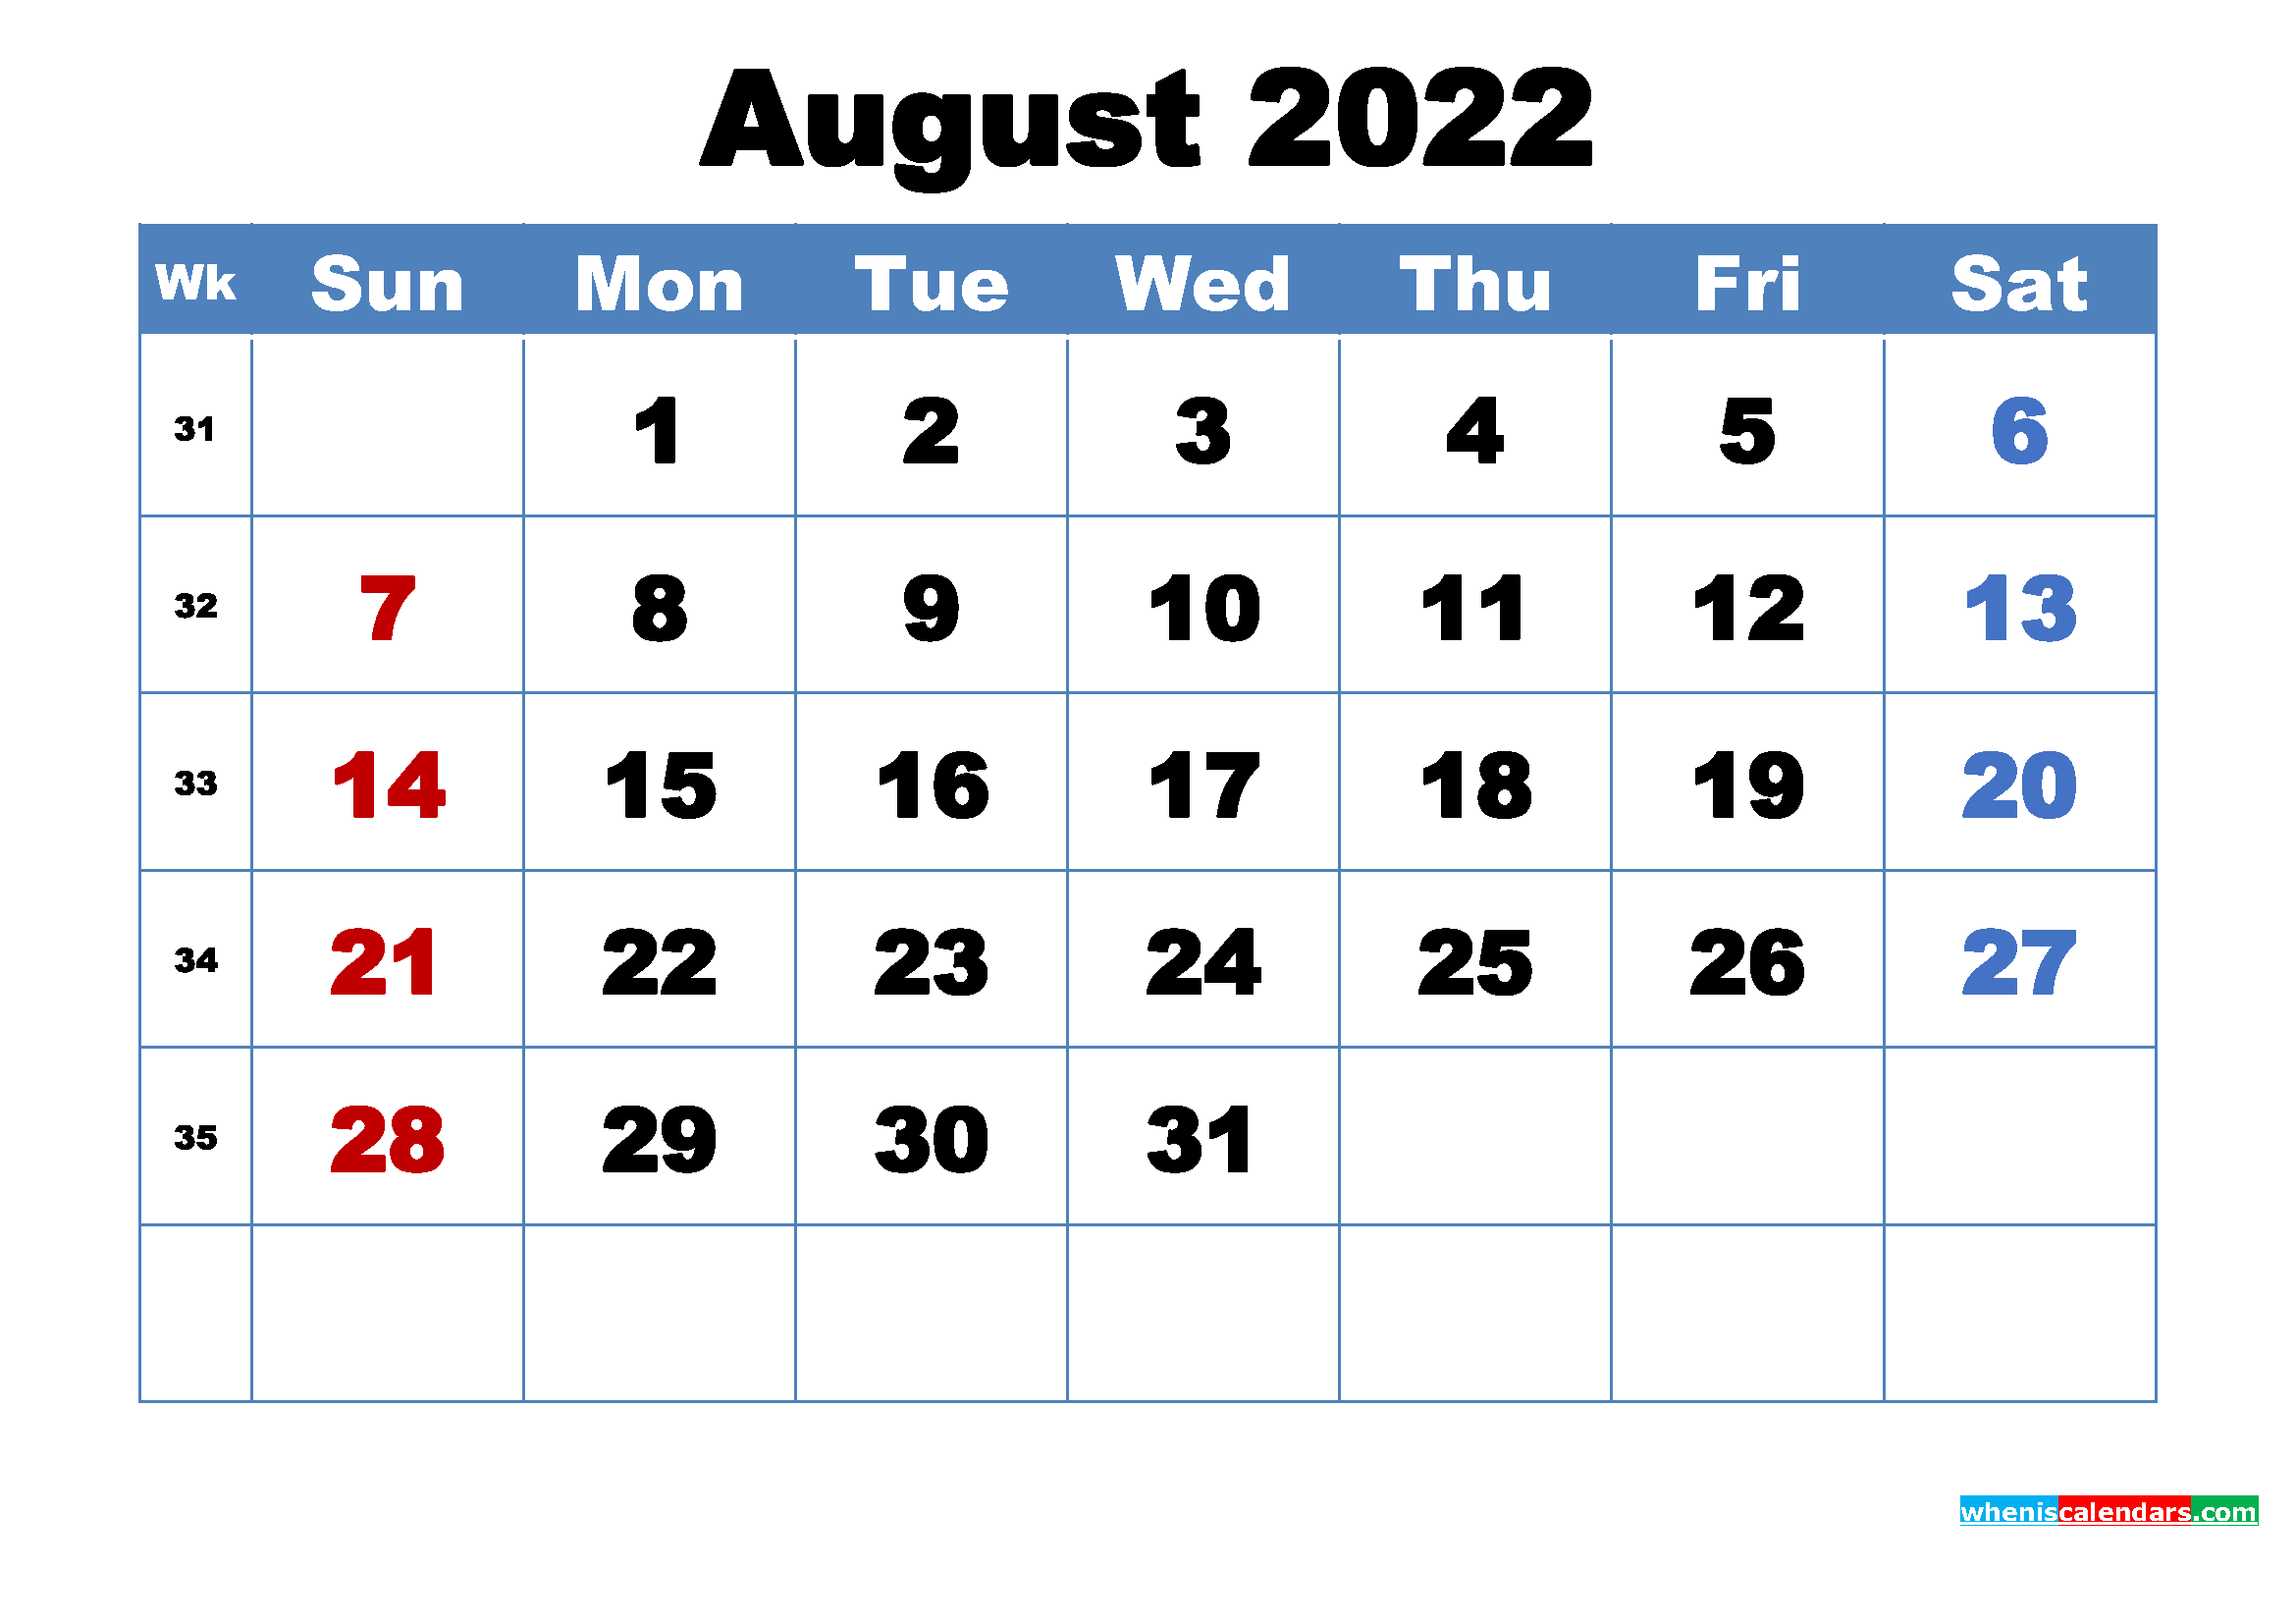 August 2022 Calendar Wallpaper Free Download